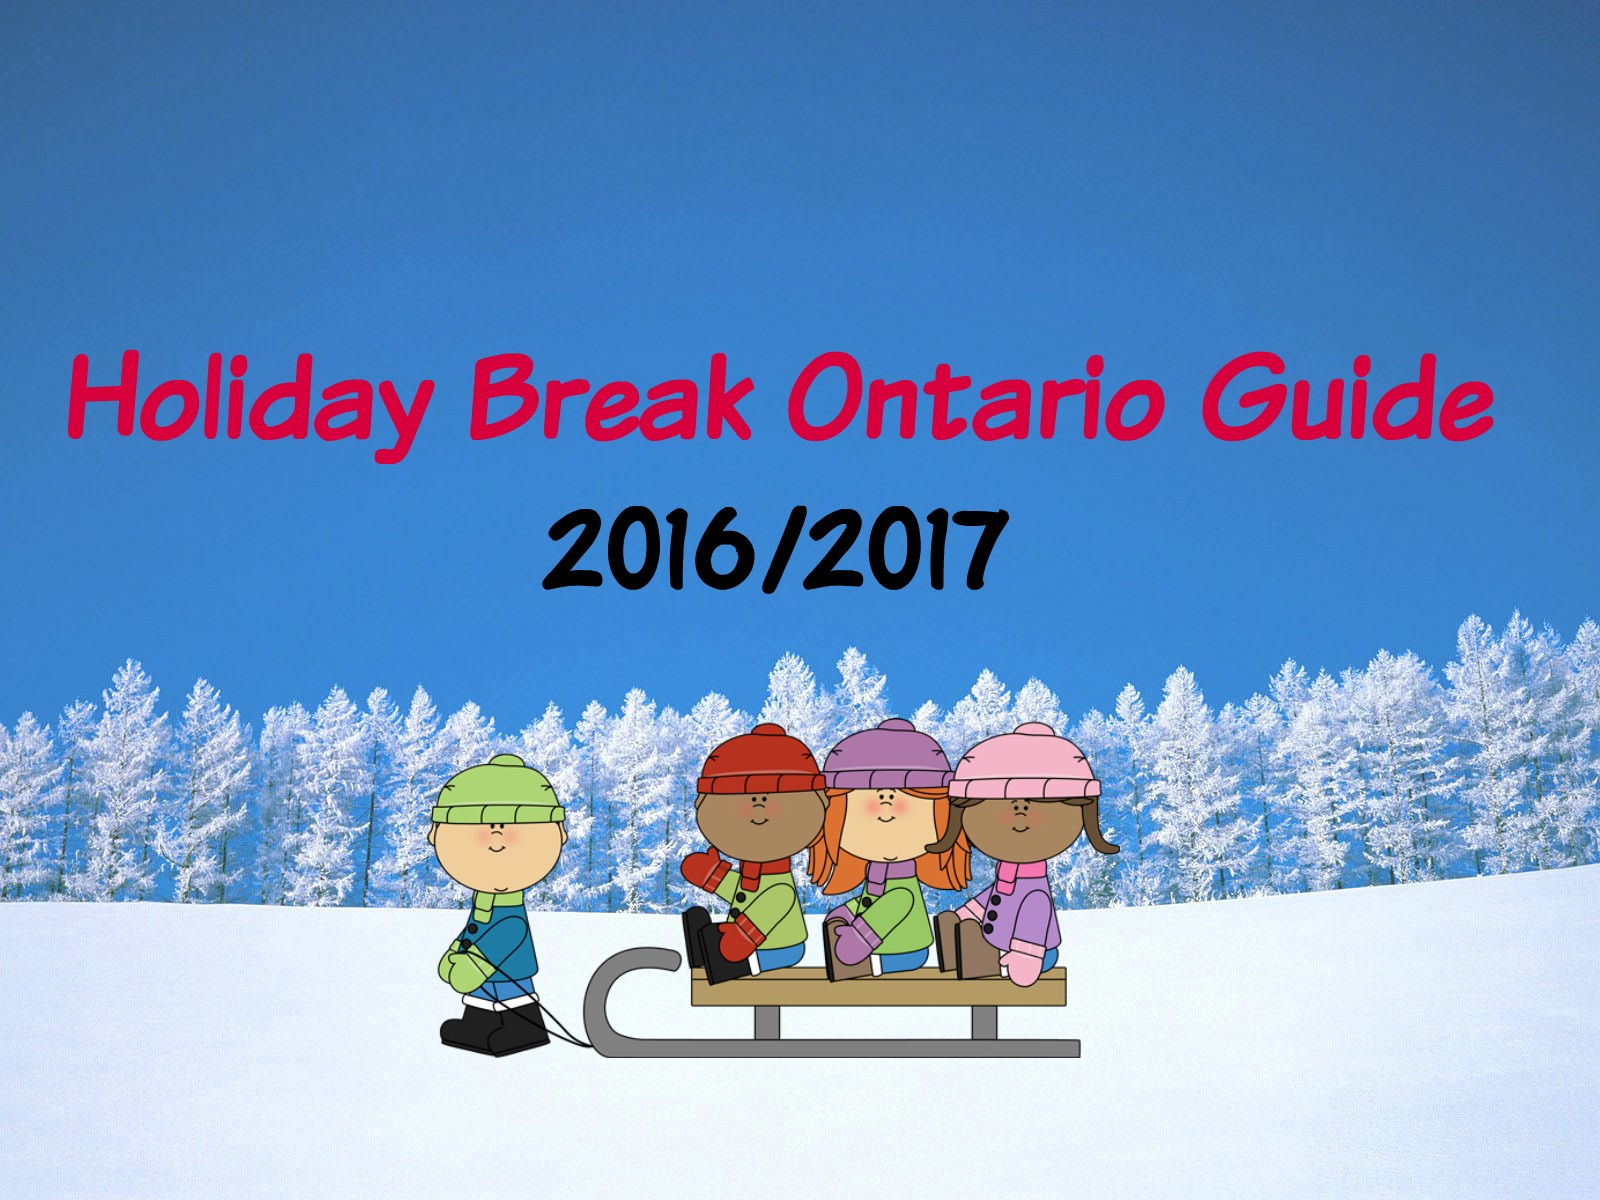 HOLIDAY WINTER BREAK 2016/2017